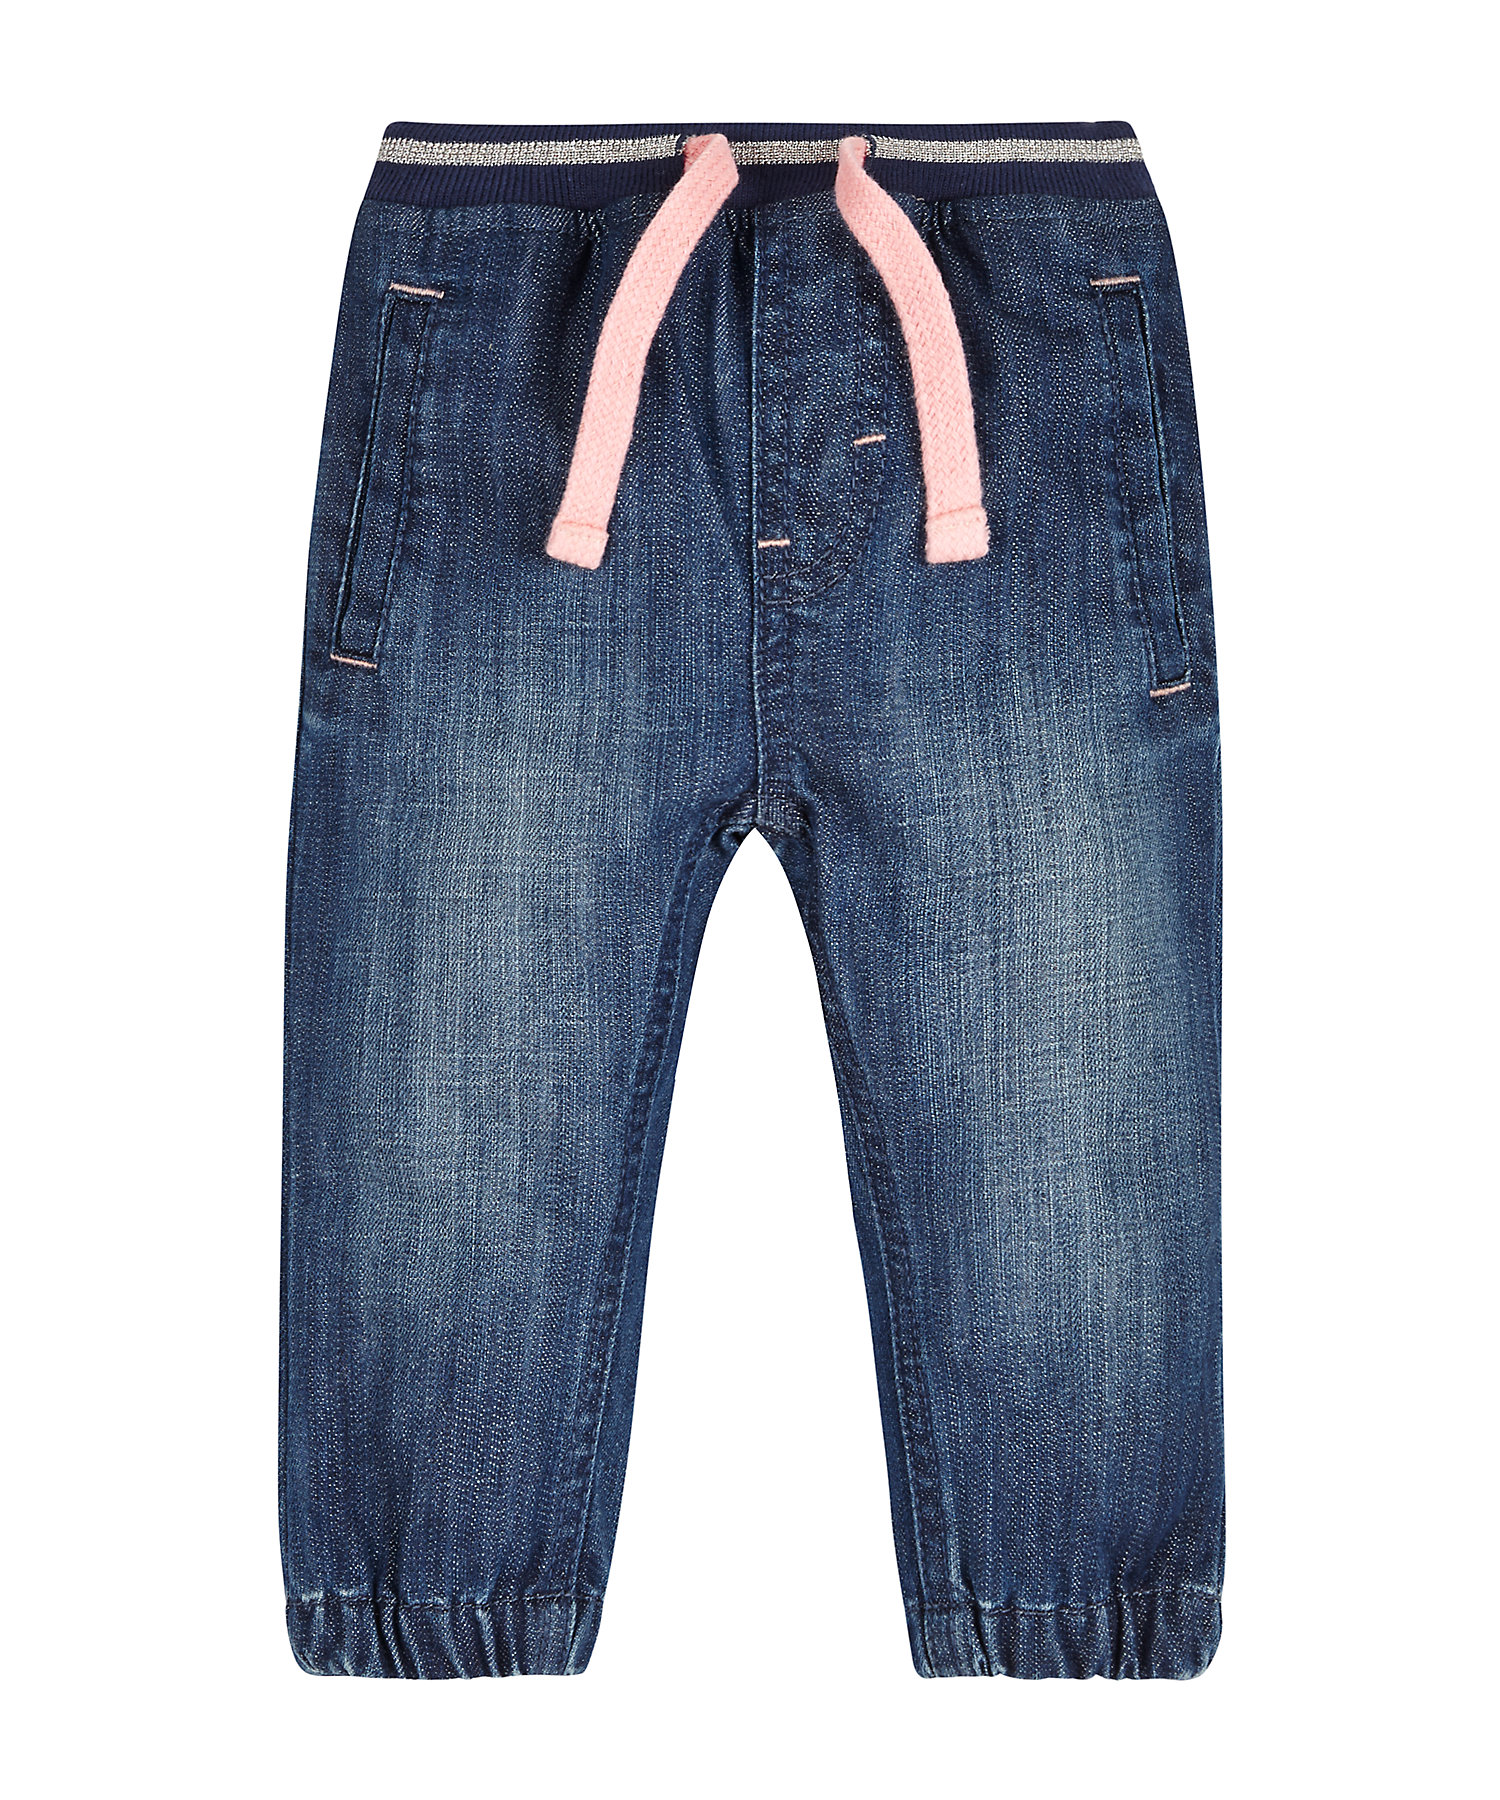 Mothercare | Girls Jeans Embroidered Pocket - Blue